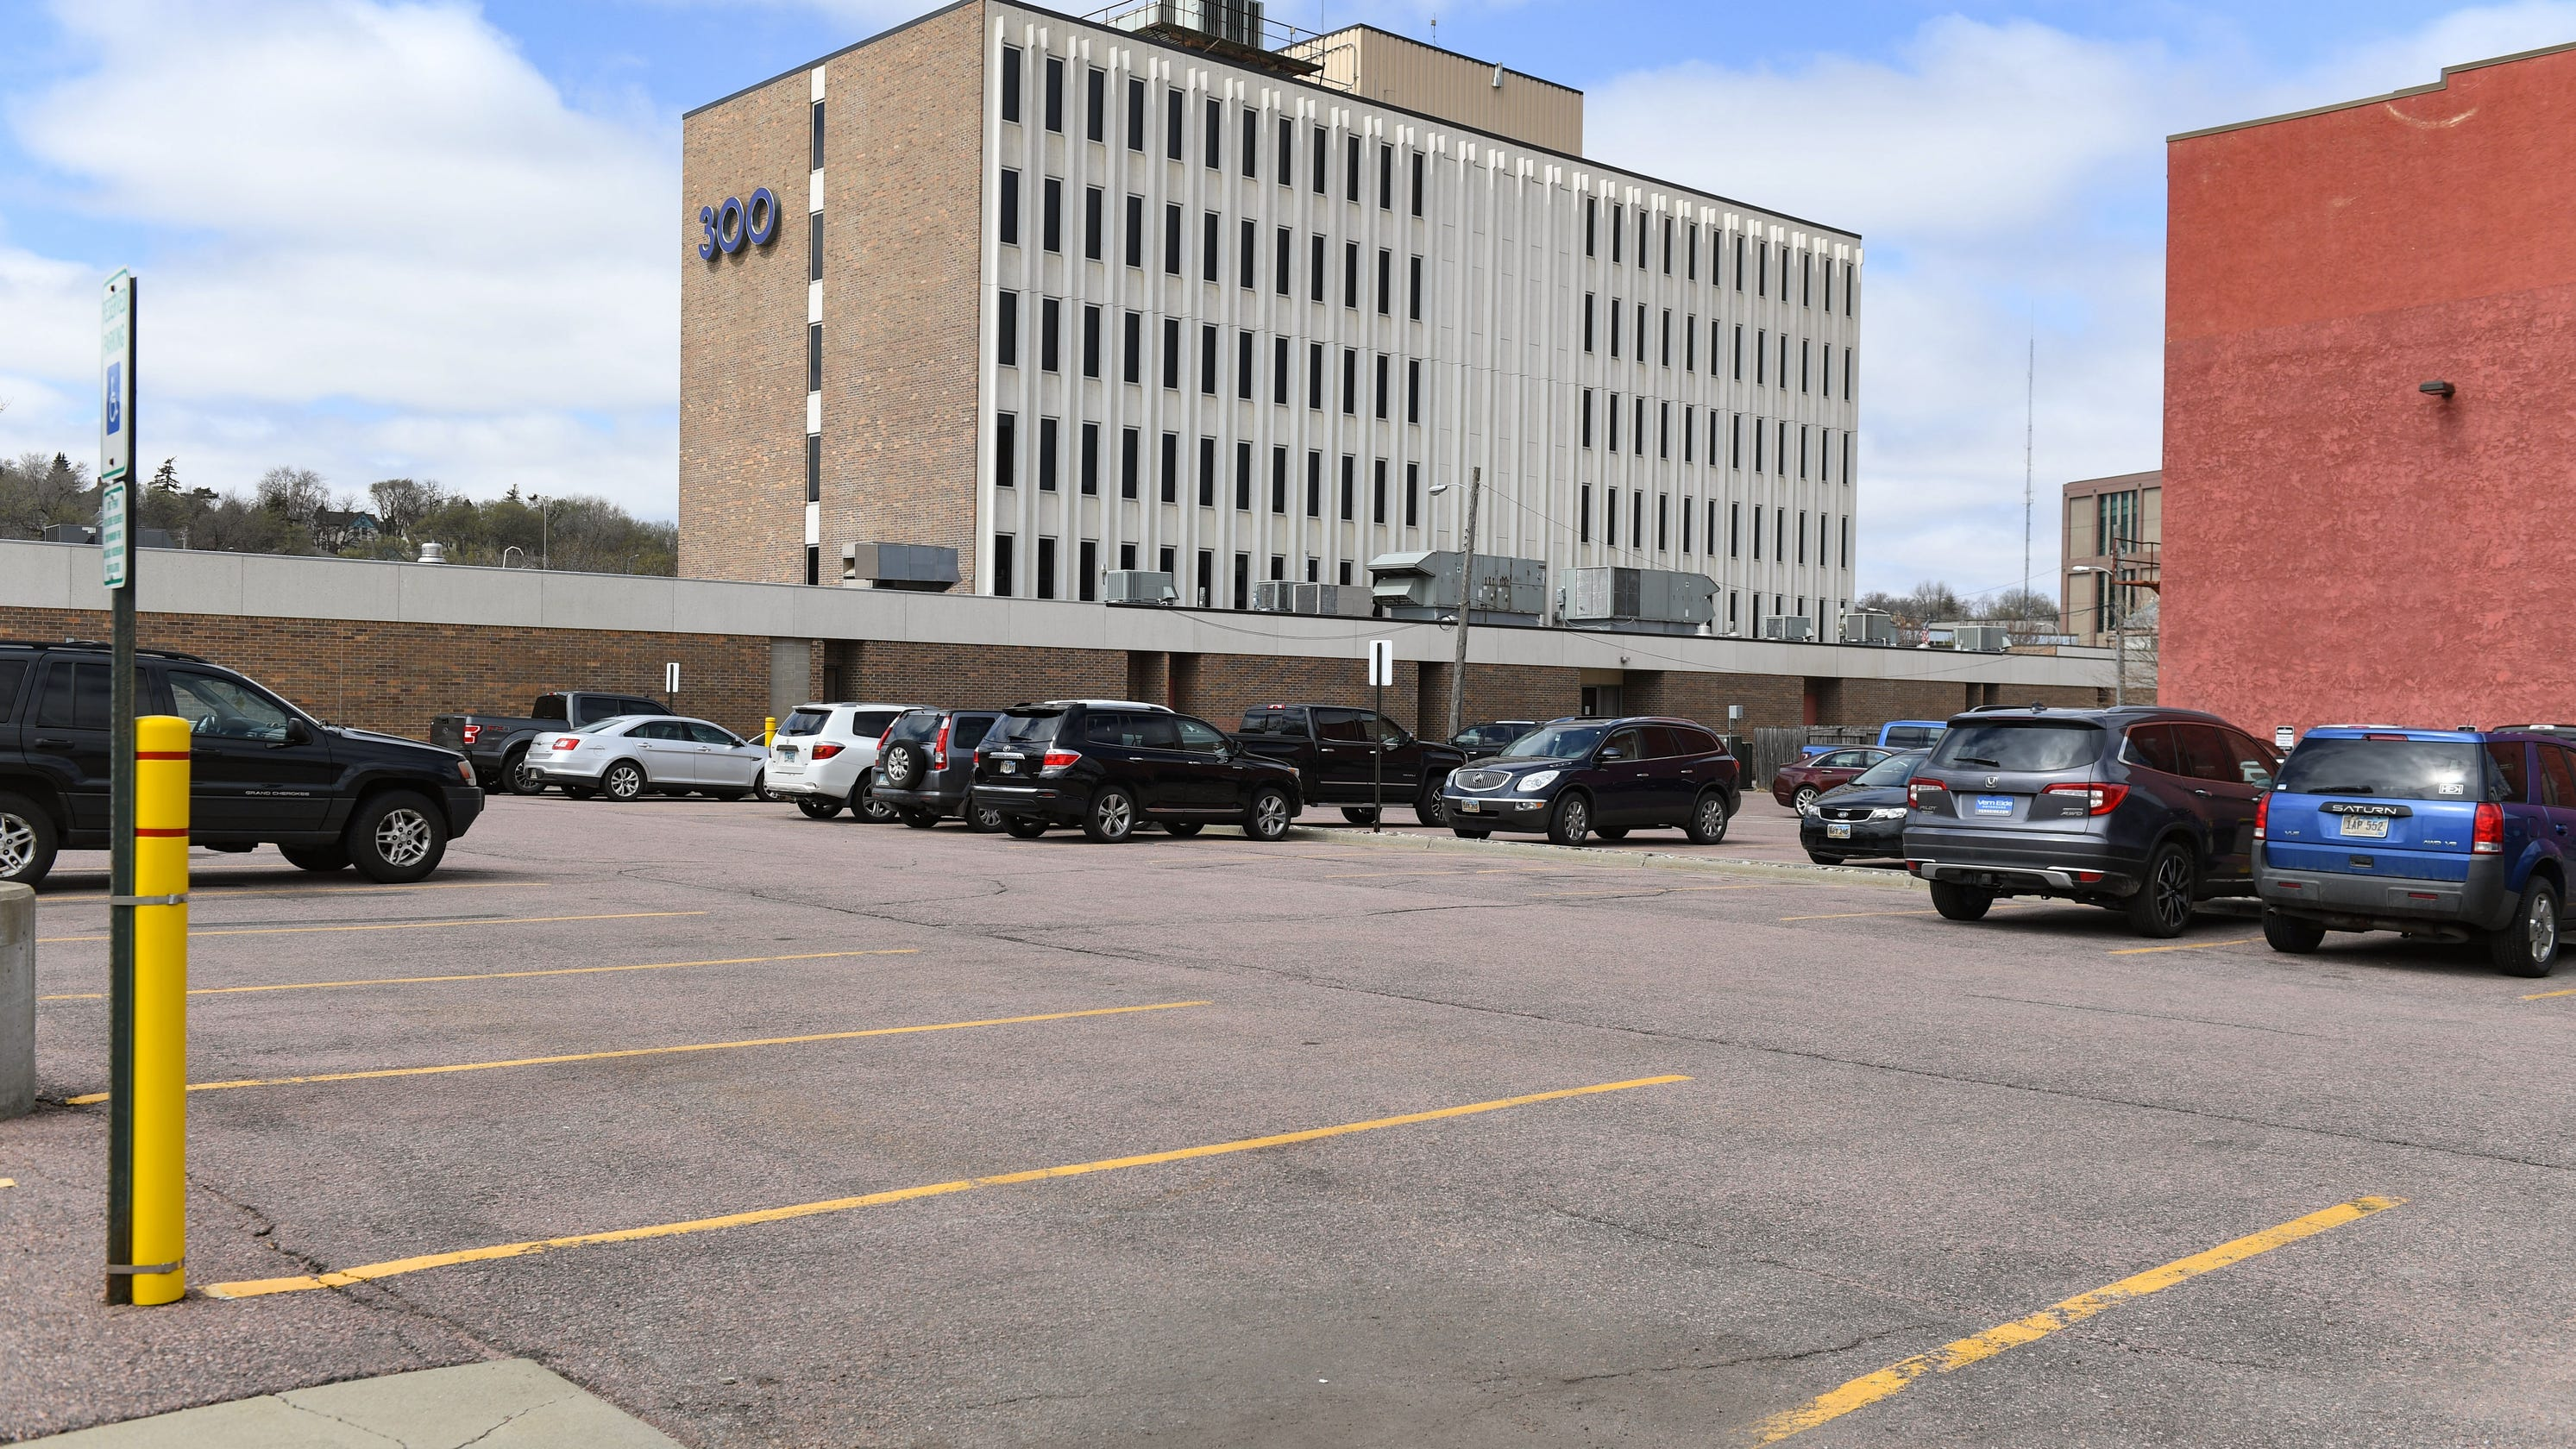 Sioux Falls City Council drills parking department on advisory boards, transparency of parking lot sales